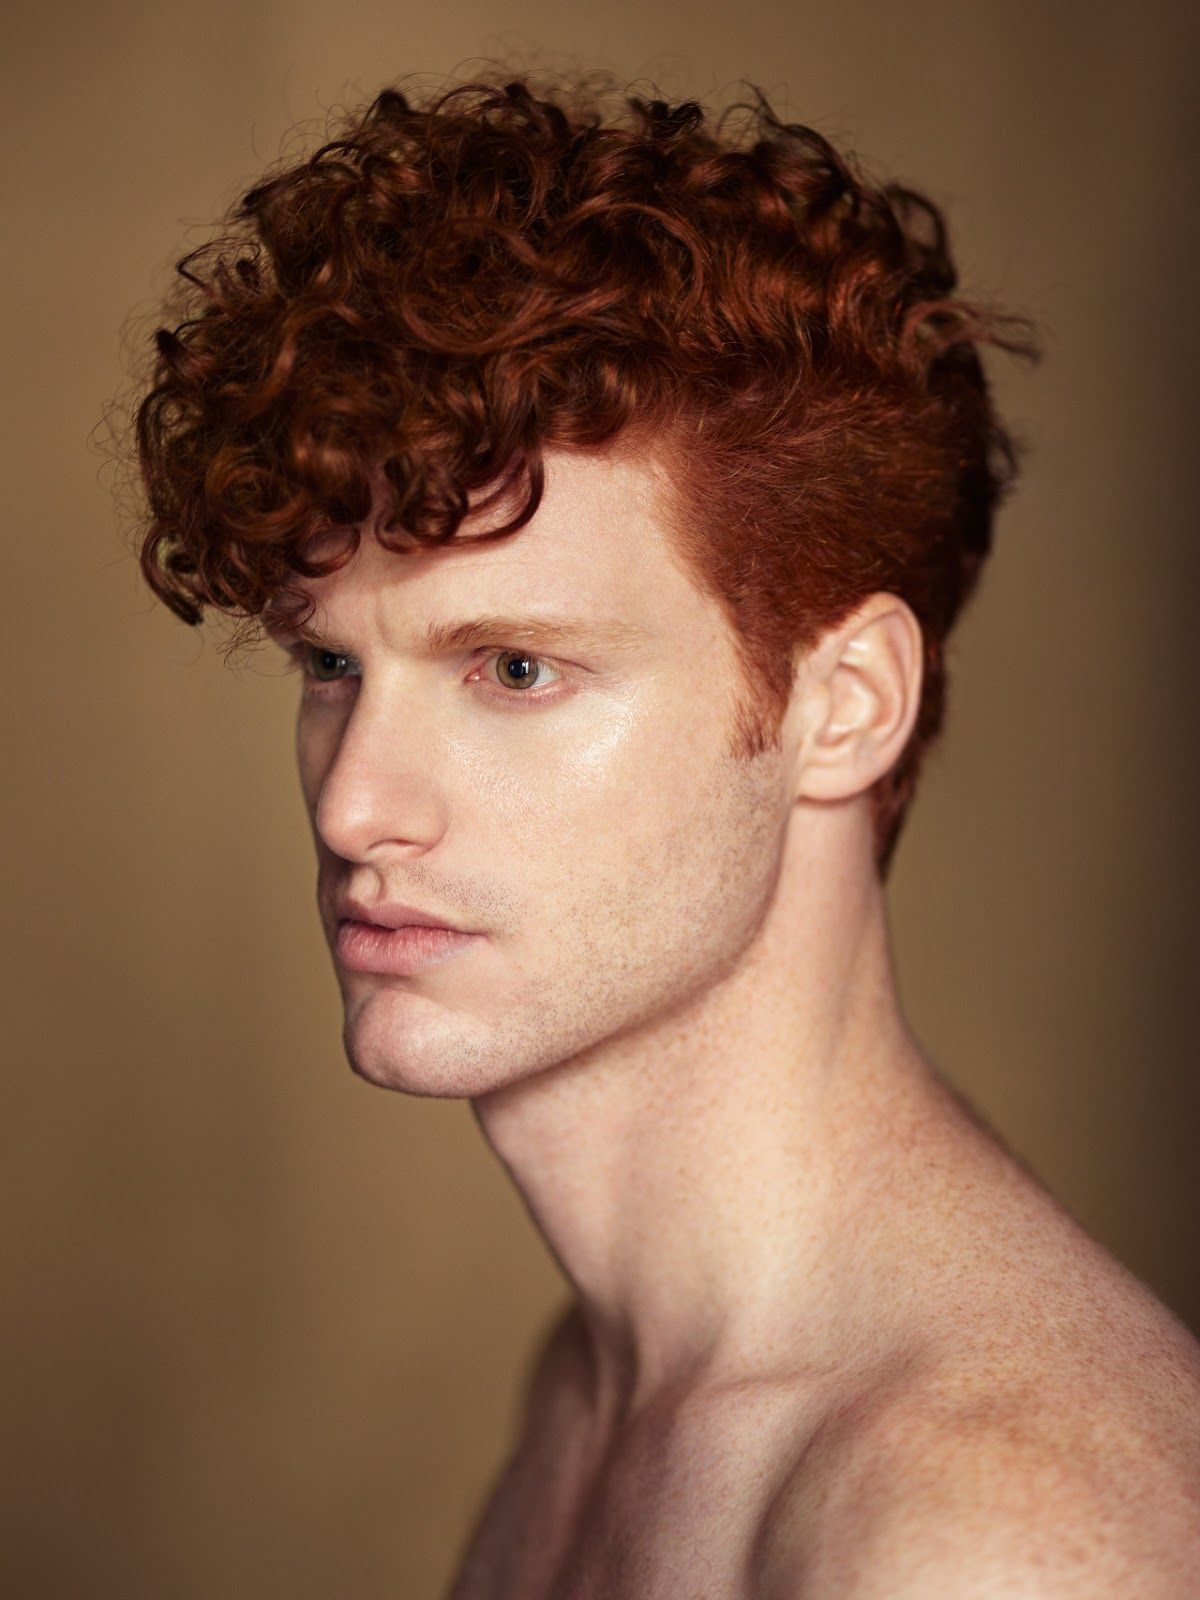 Best curly haircut for men marc goldfingerudhot guys with curly hair  long hairstyles for men